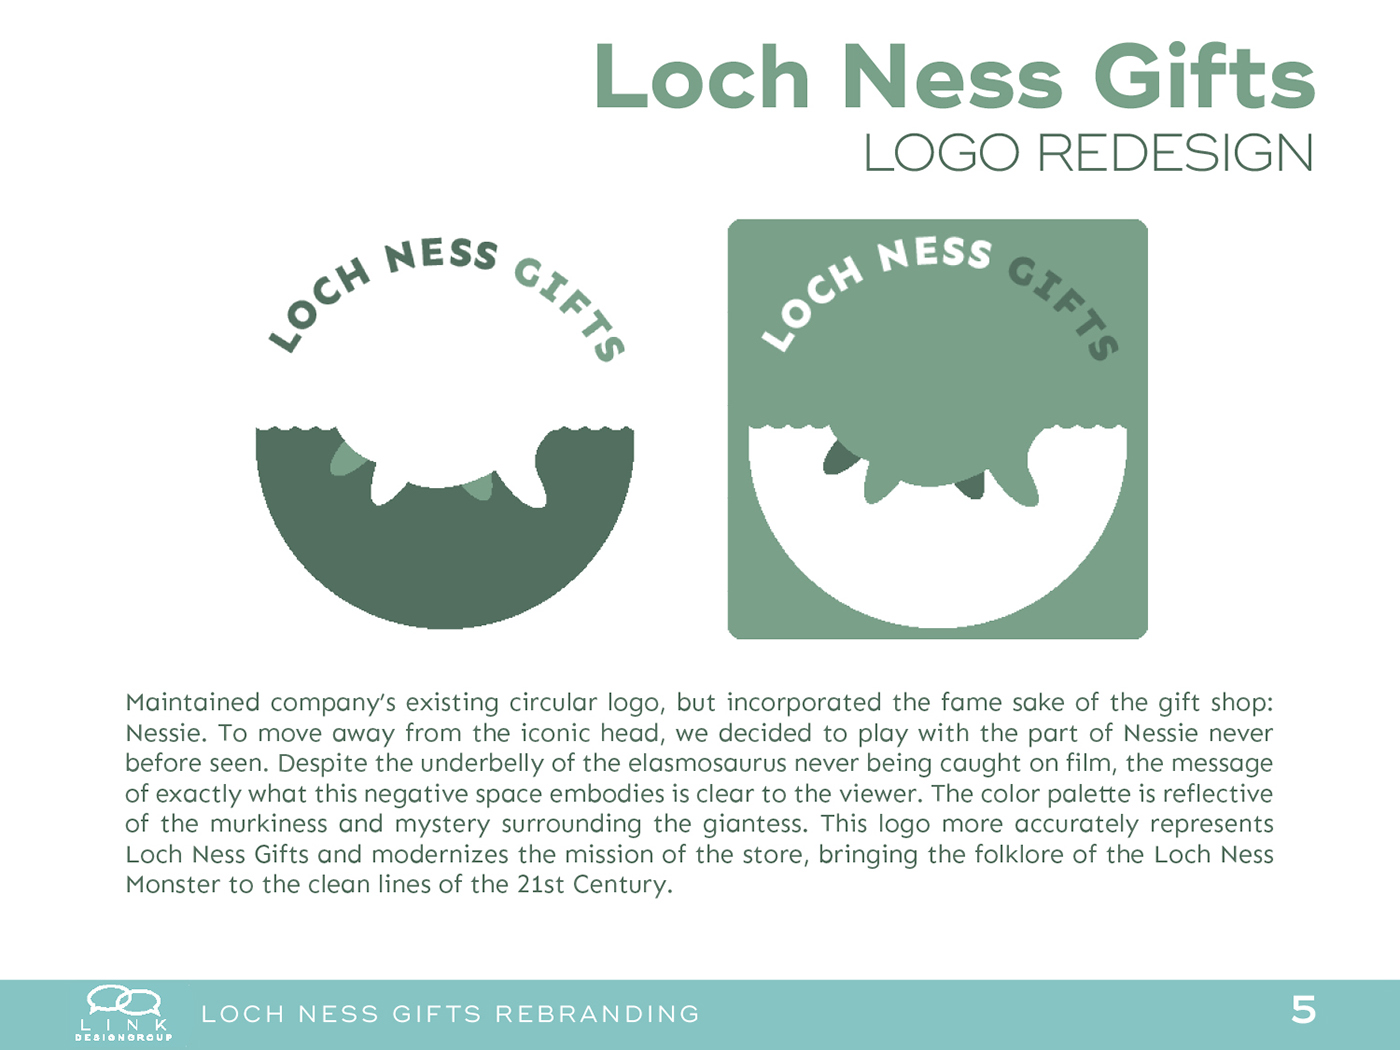 Loch Ness Gifts Rebranding. Bayless Thompson •. Follow Following Unfollow. Save to Collection